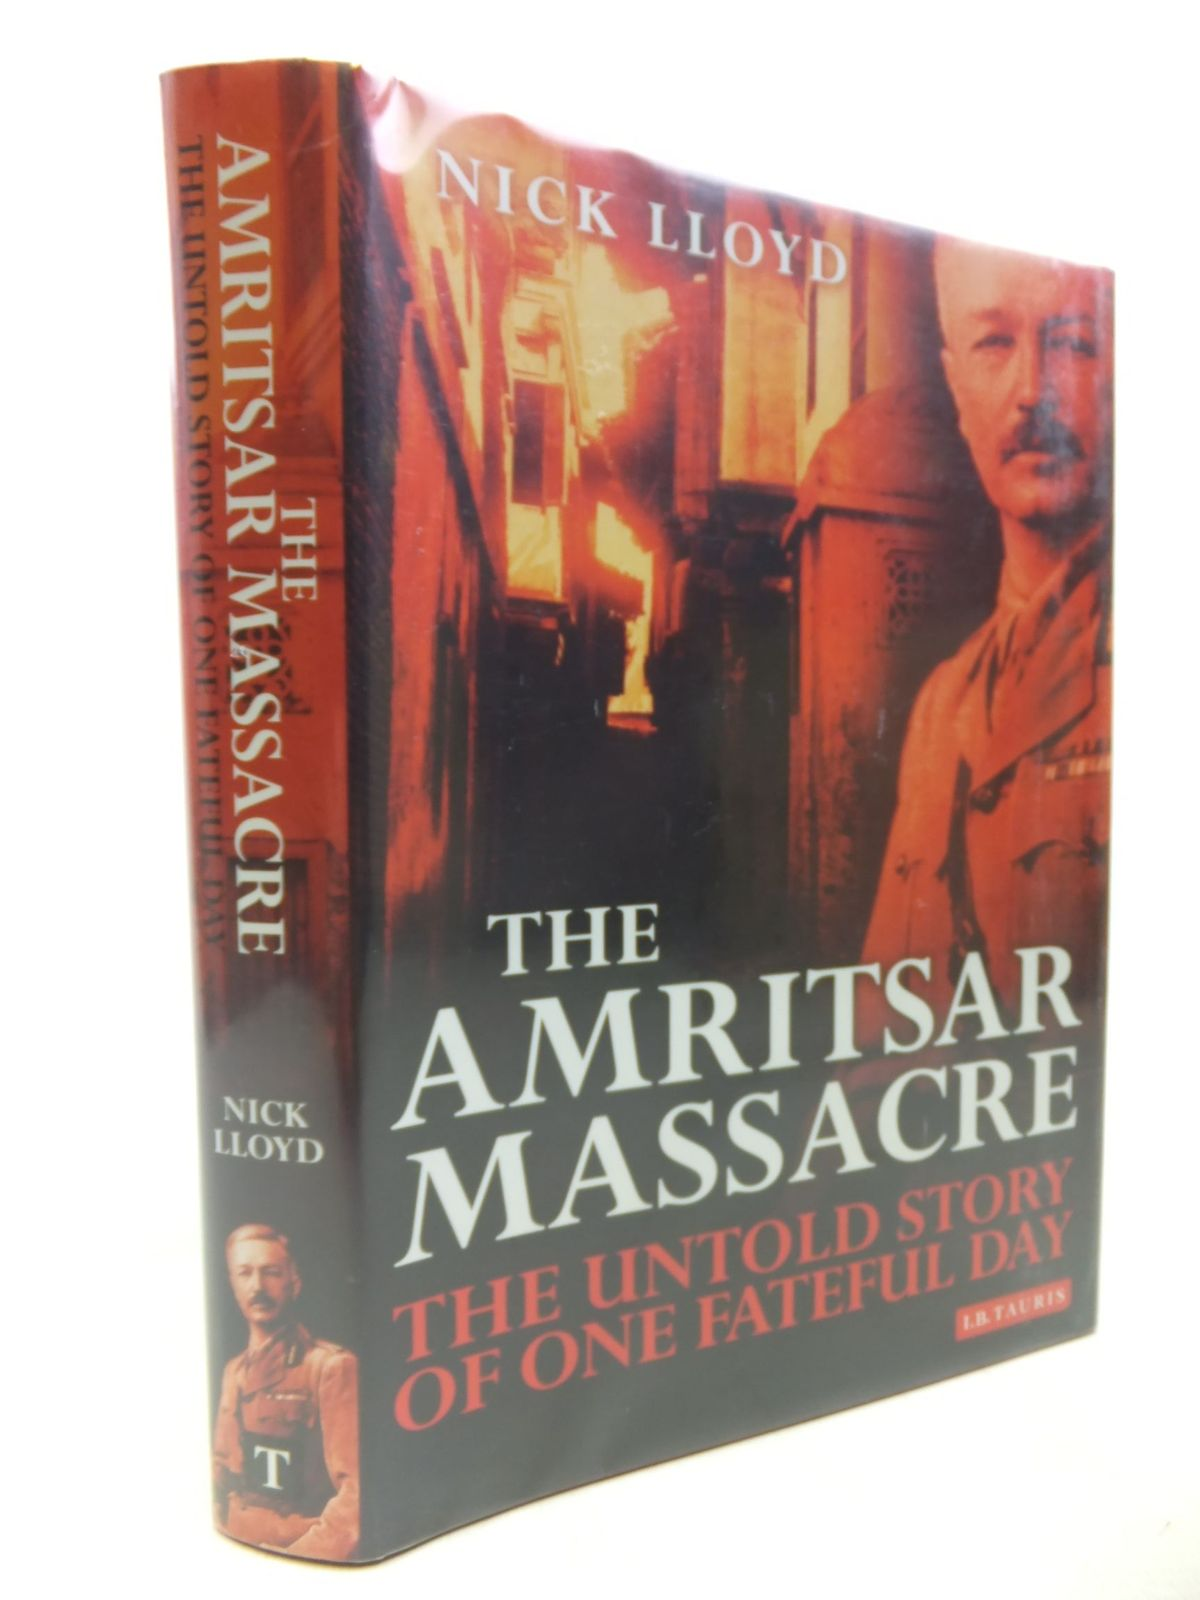 Photo of THE AMRITSAR MASSACRE: THE UNTOLD STORY OF ONE FATEFUL DAY written by Lloyd, Nick published by I.B. Tauris & Co. Ltd. (STOCK CODE: 1713387)  for sale by Stella & Rose's Books